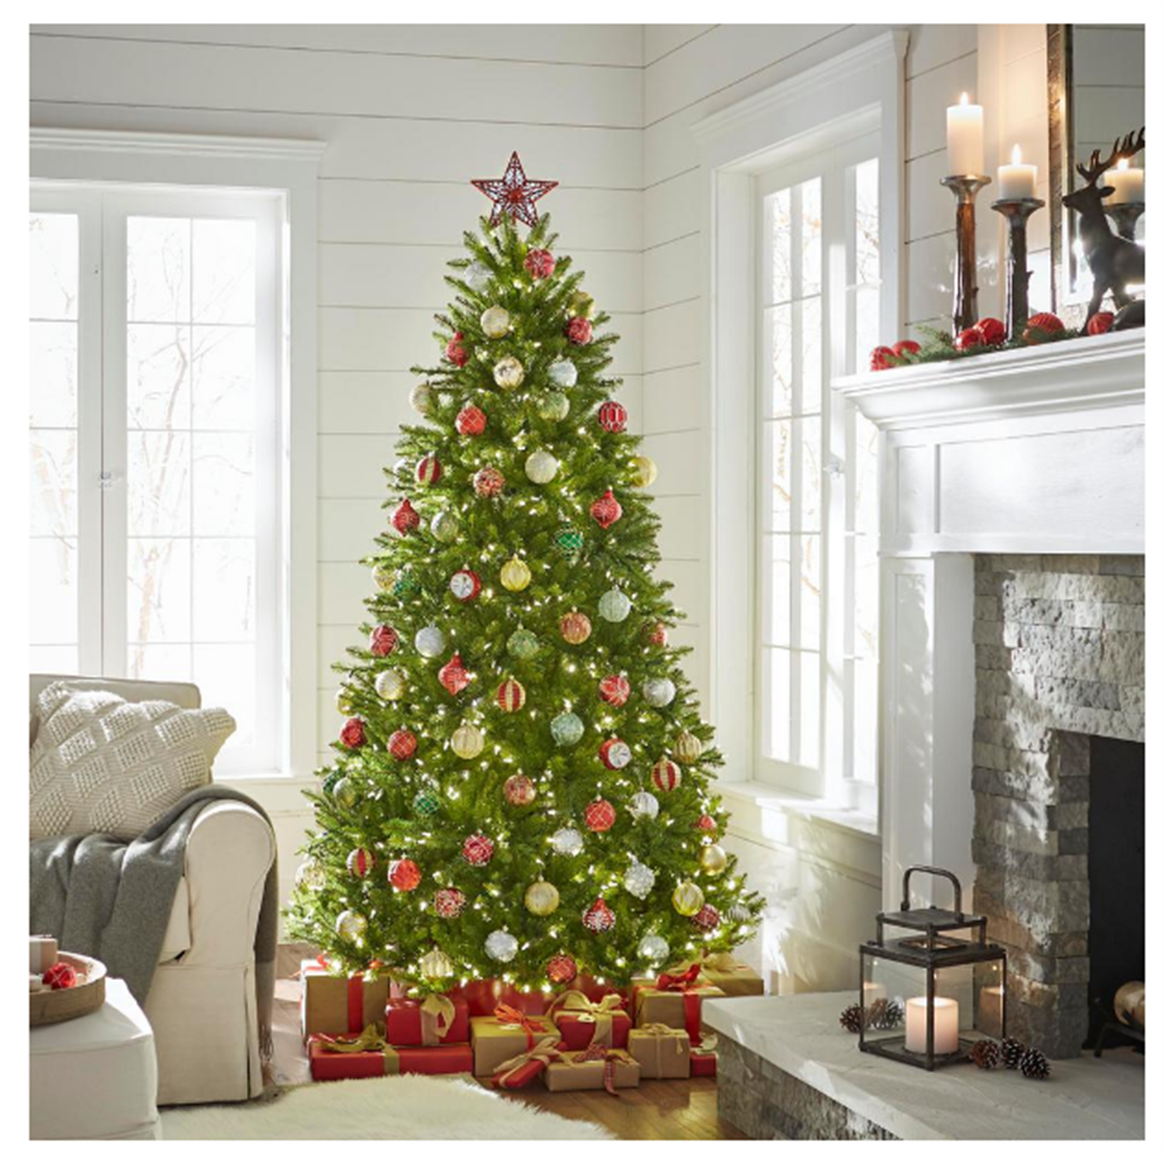 Home Depot – Up To 75% Off Christmas Items + FS (7.5 ft. Dunhill Fir Artificial Christmas Tree w/Lights) Only $184.00, Reg $369.00!